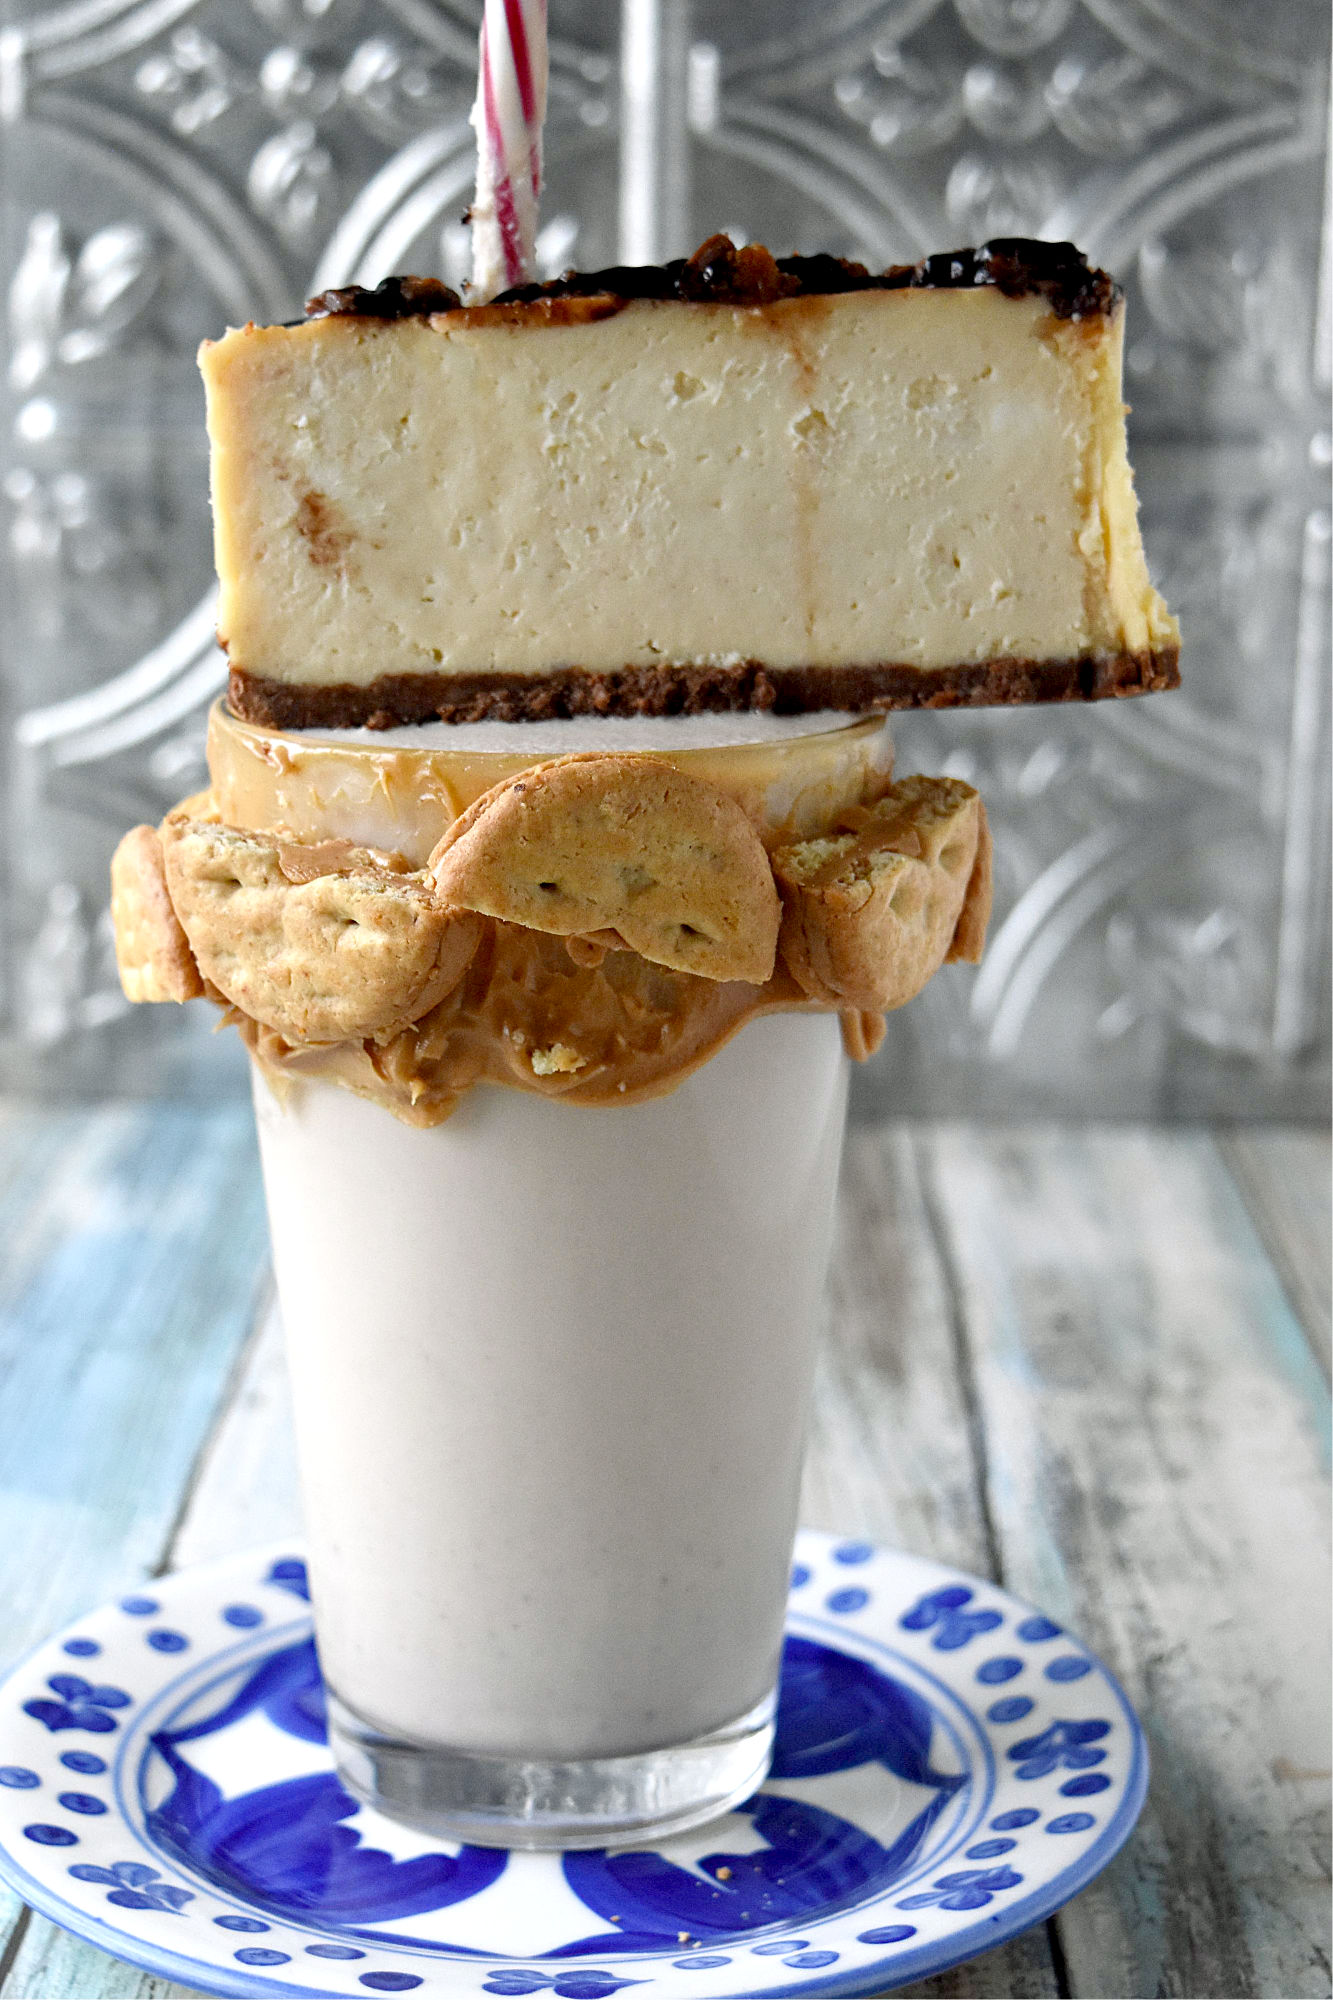 Peanut Butter Cheesecake Milkshakes tastes like a peanut butter cheesecake in a glass. It is sweet, full of peanut butter flavor with a hint of cheesecake tang.  #OurFamilyTable